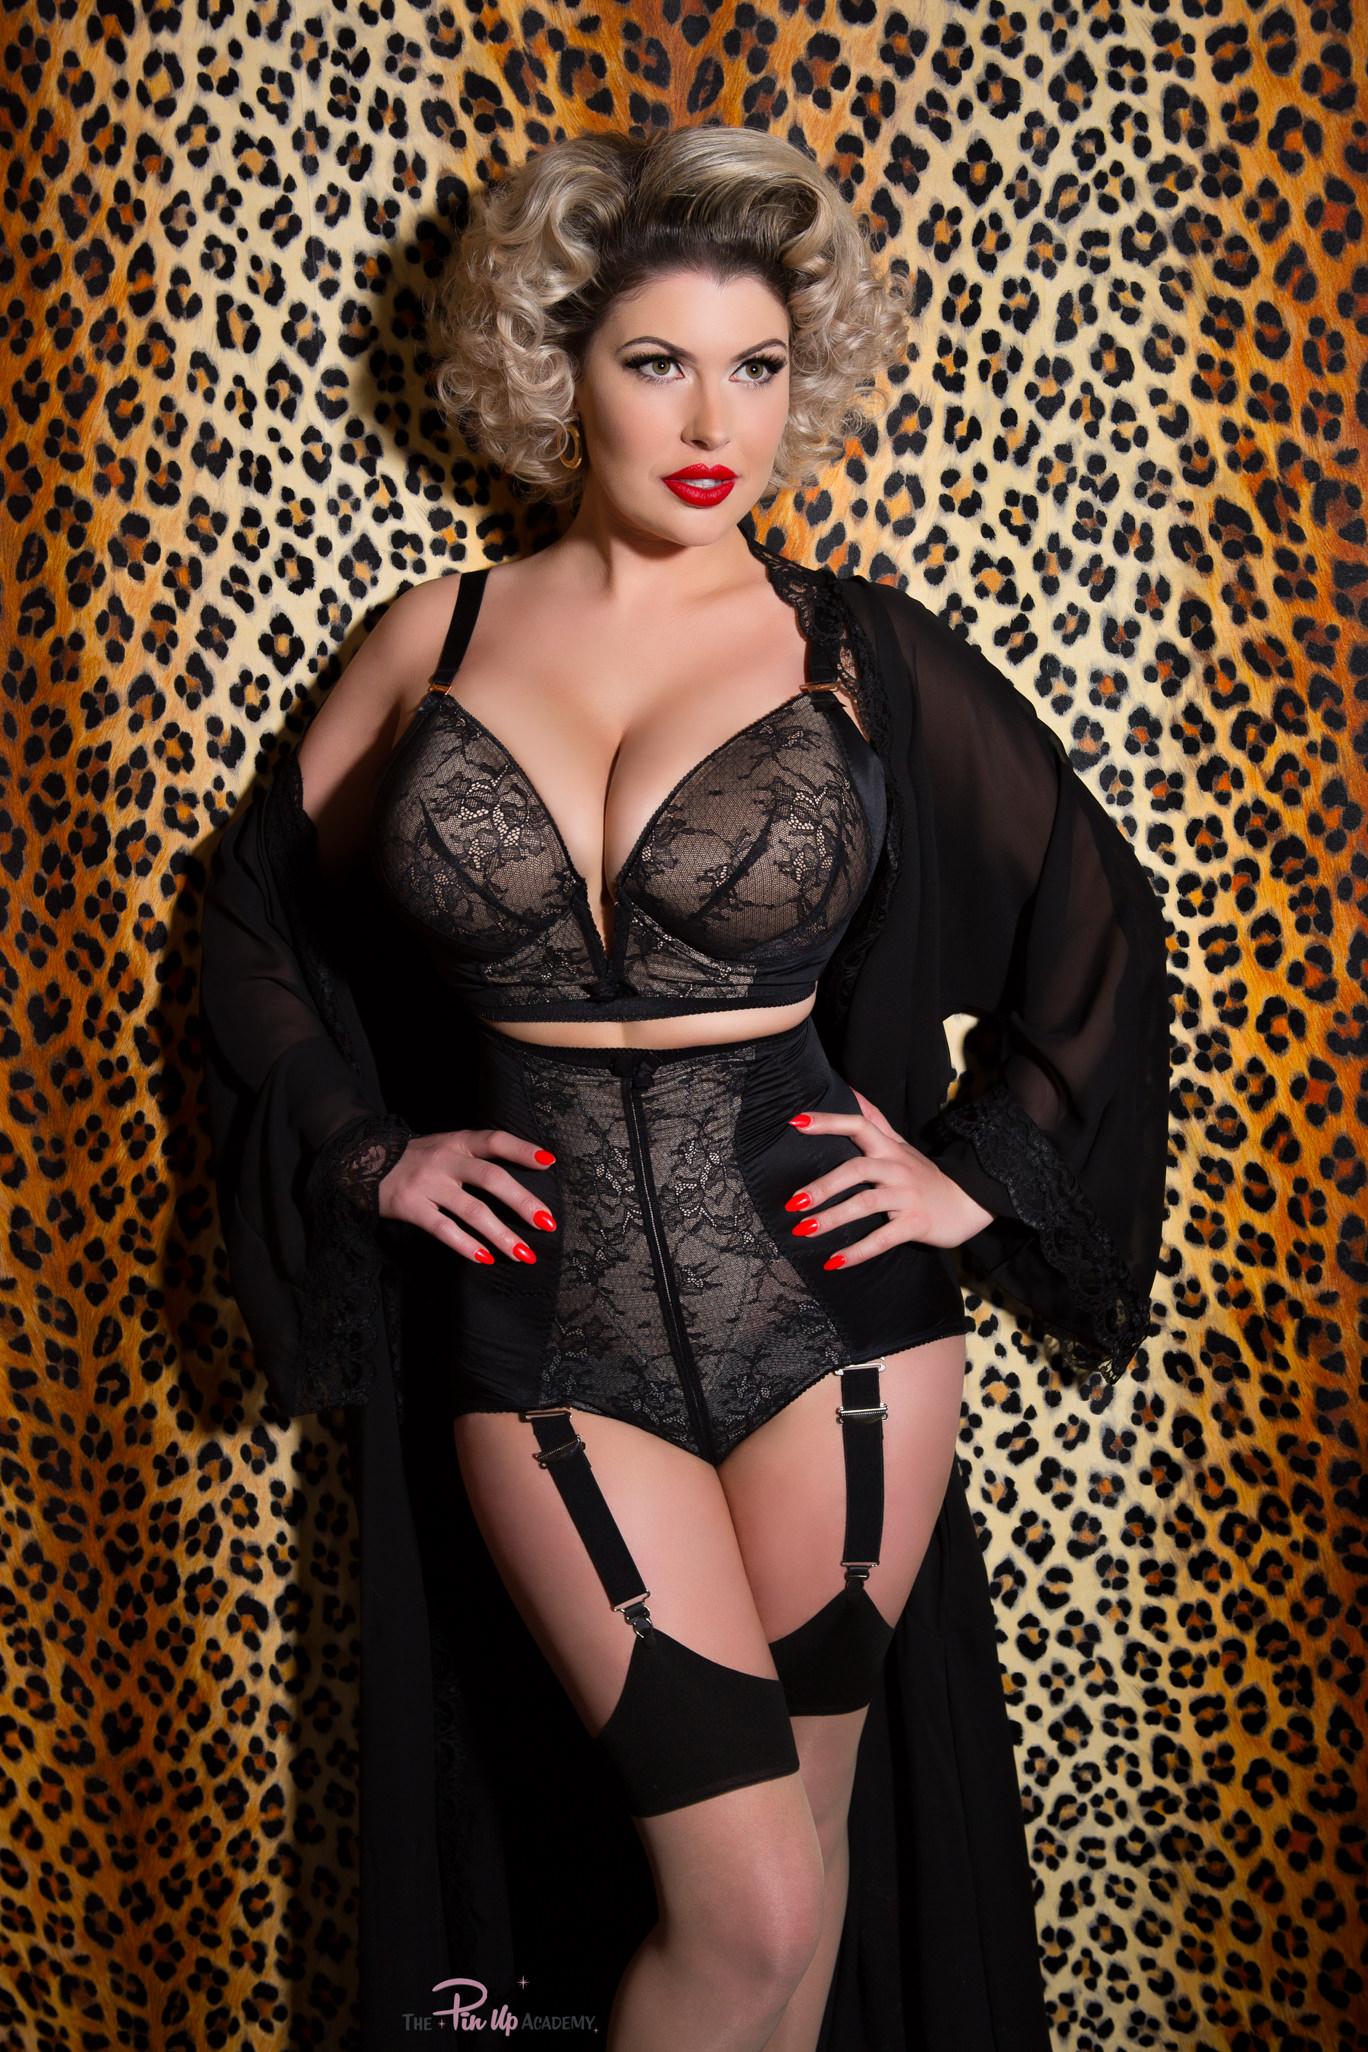 pinup girl wearing lingerie on leopard print background